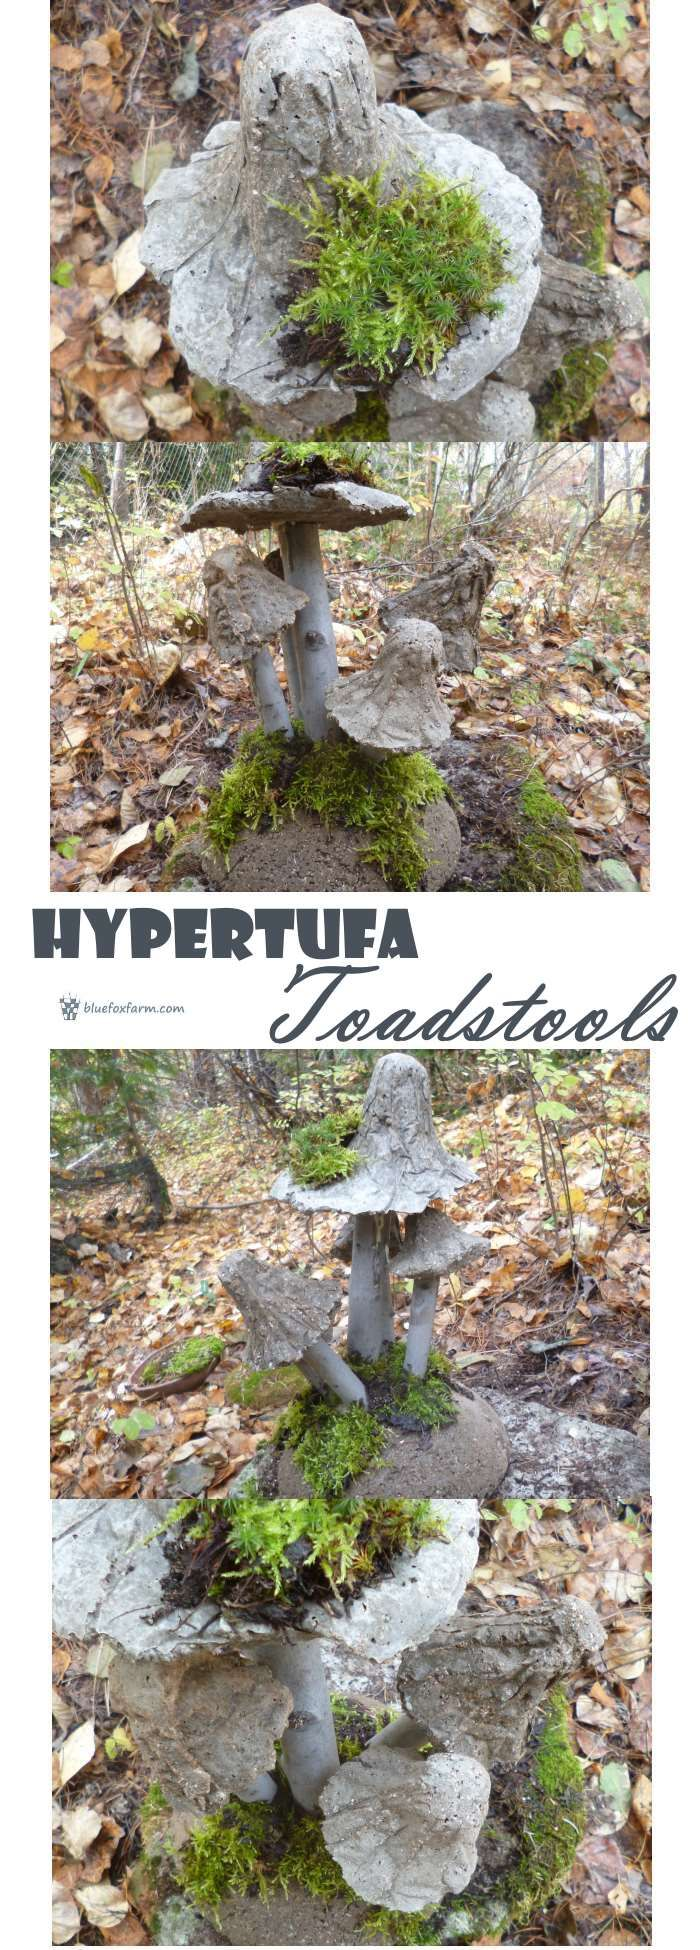 Hypertufa Toadstools - not just your ordinary mushrooms... Rustic Garden Art | Hypertufa Projects